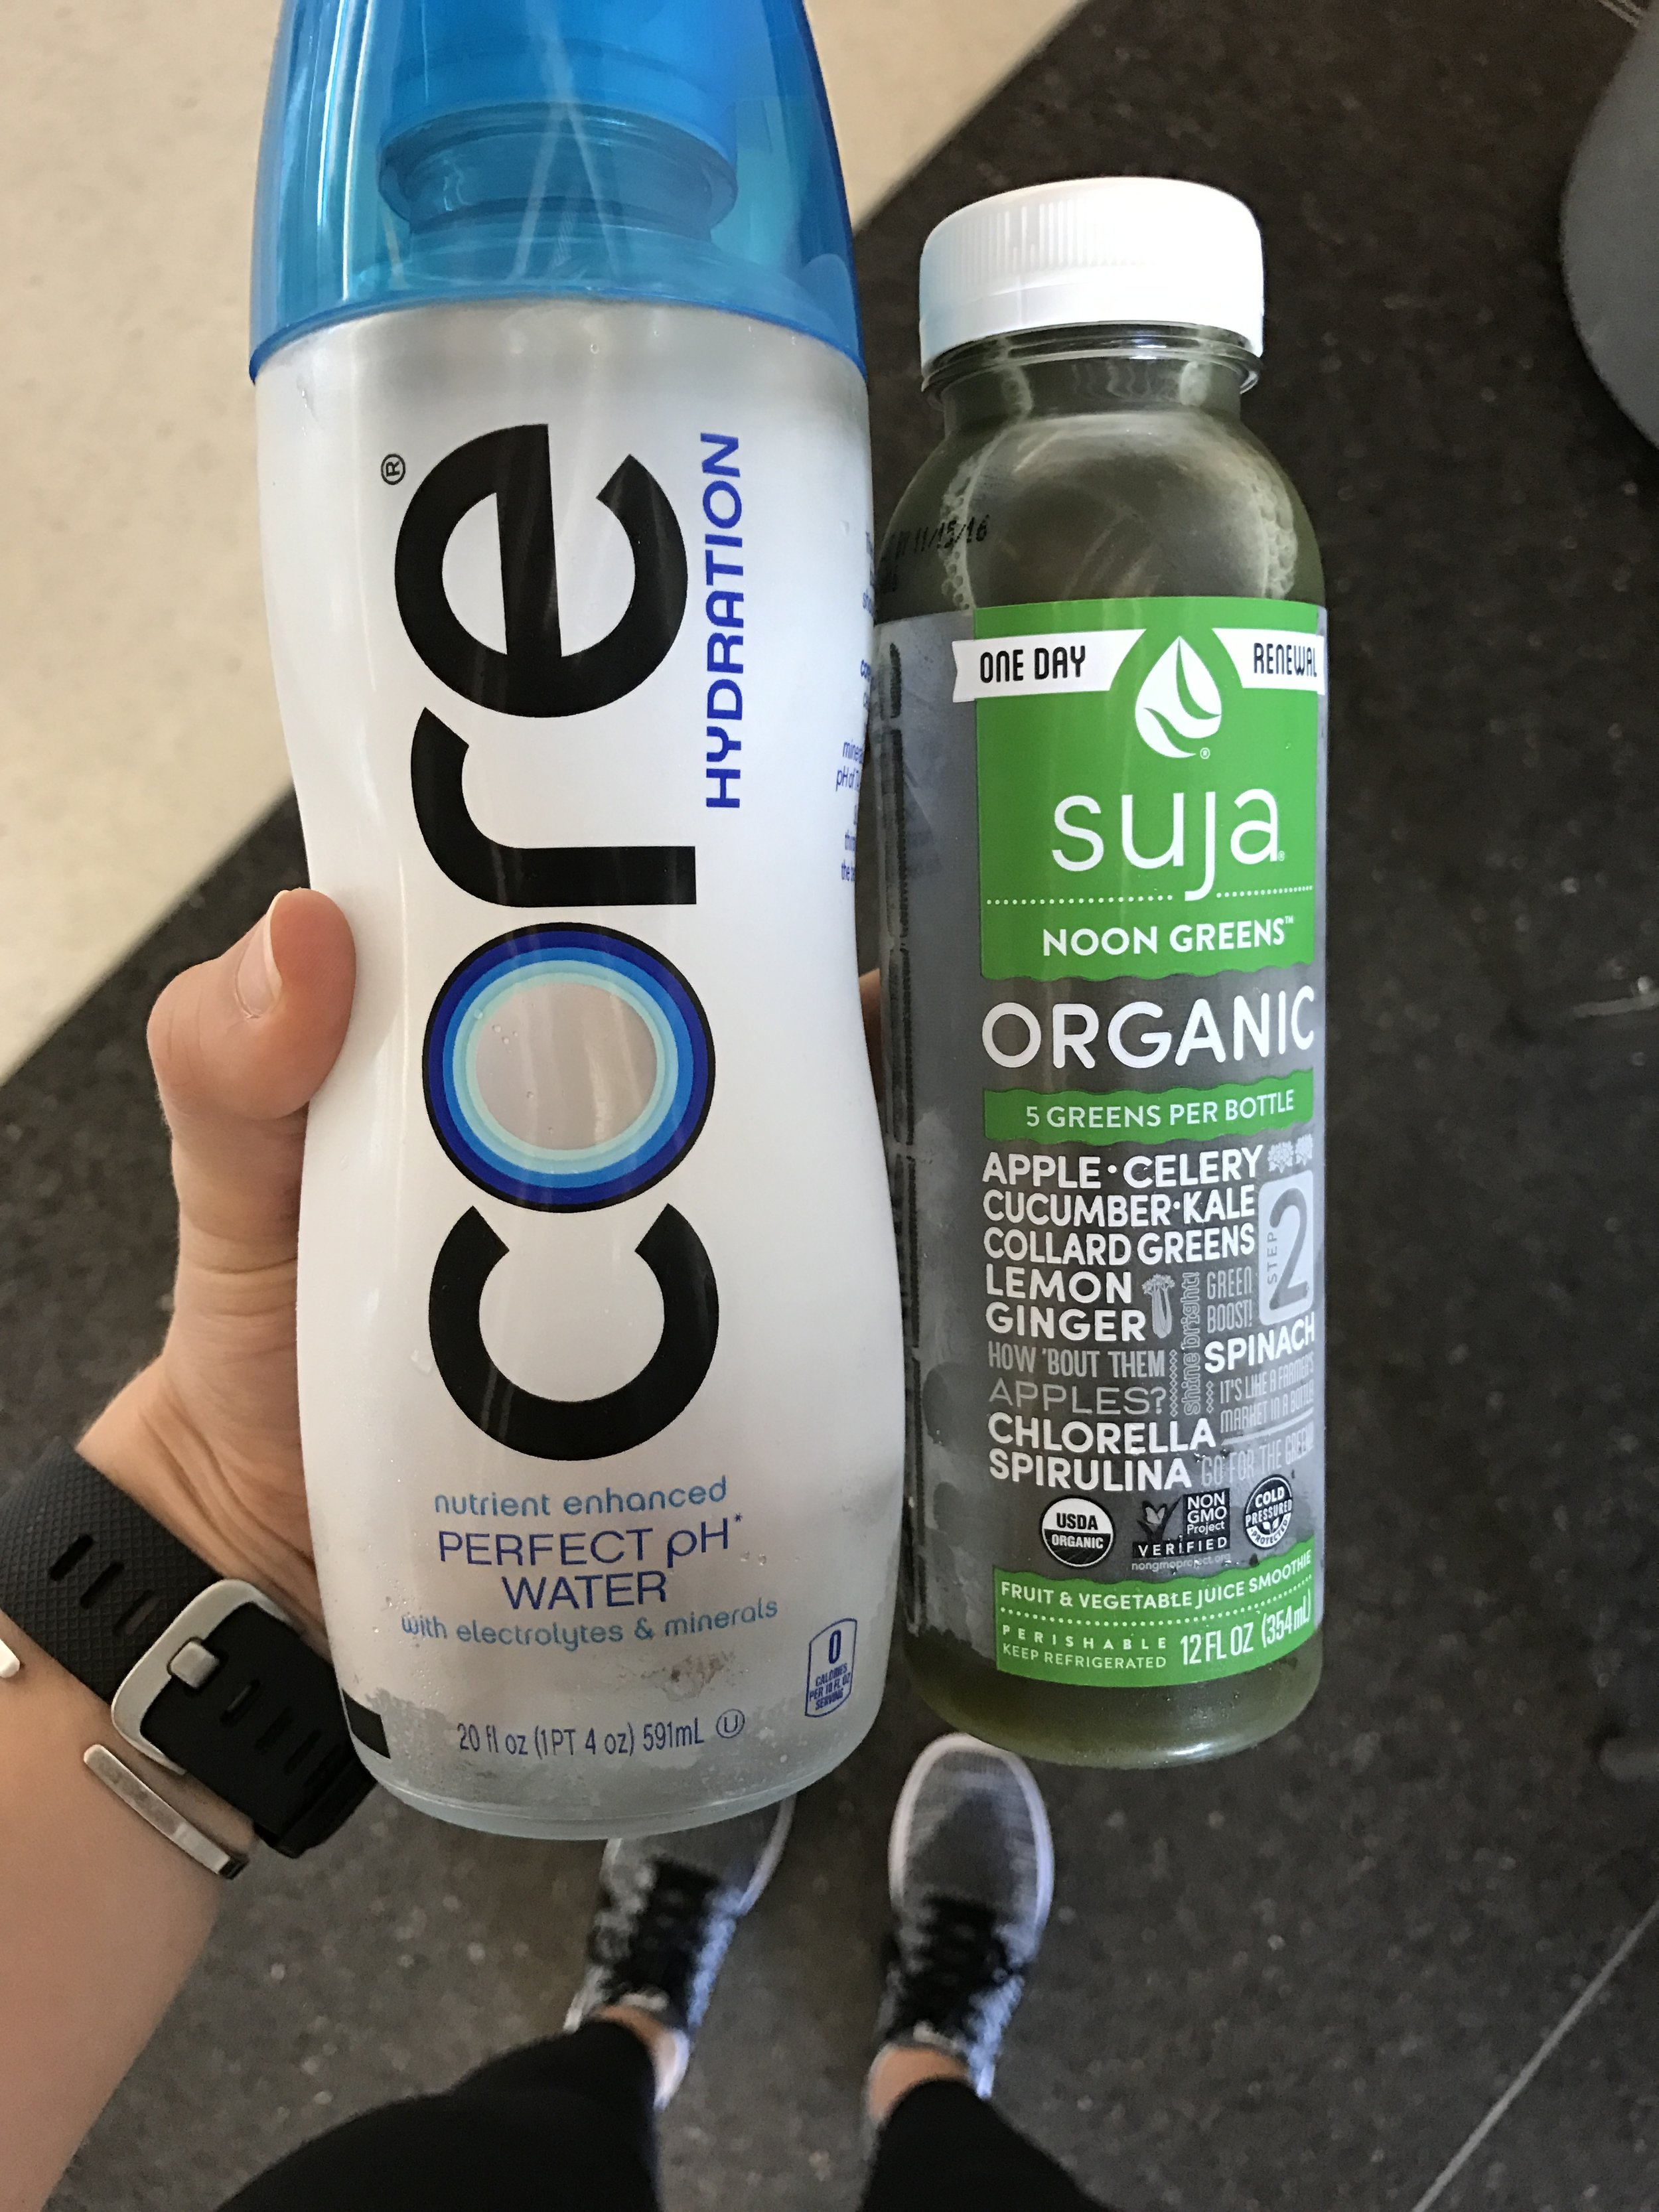 Taking care of myself while traveling - green juice for nutrients, LOTS of water, and getting ALL the steps while in the airport.